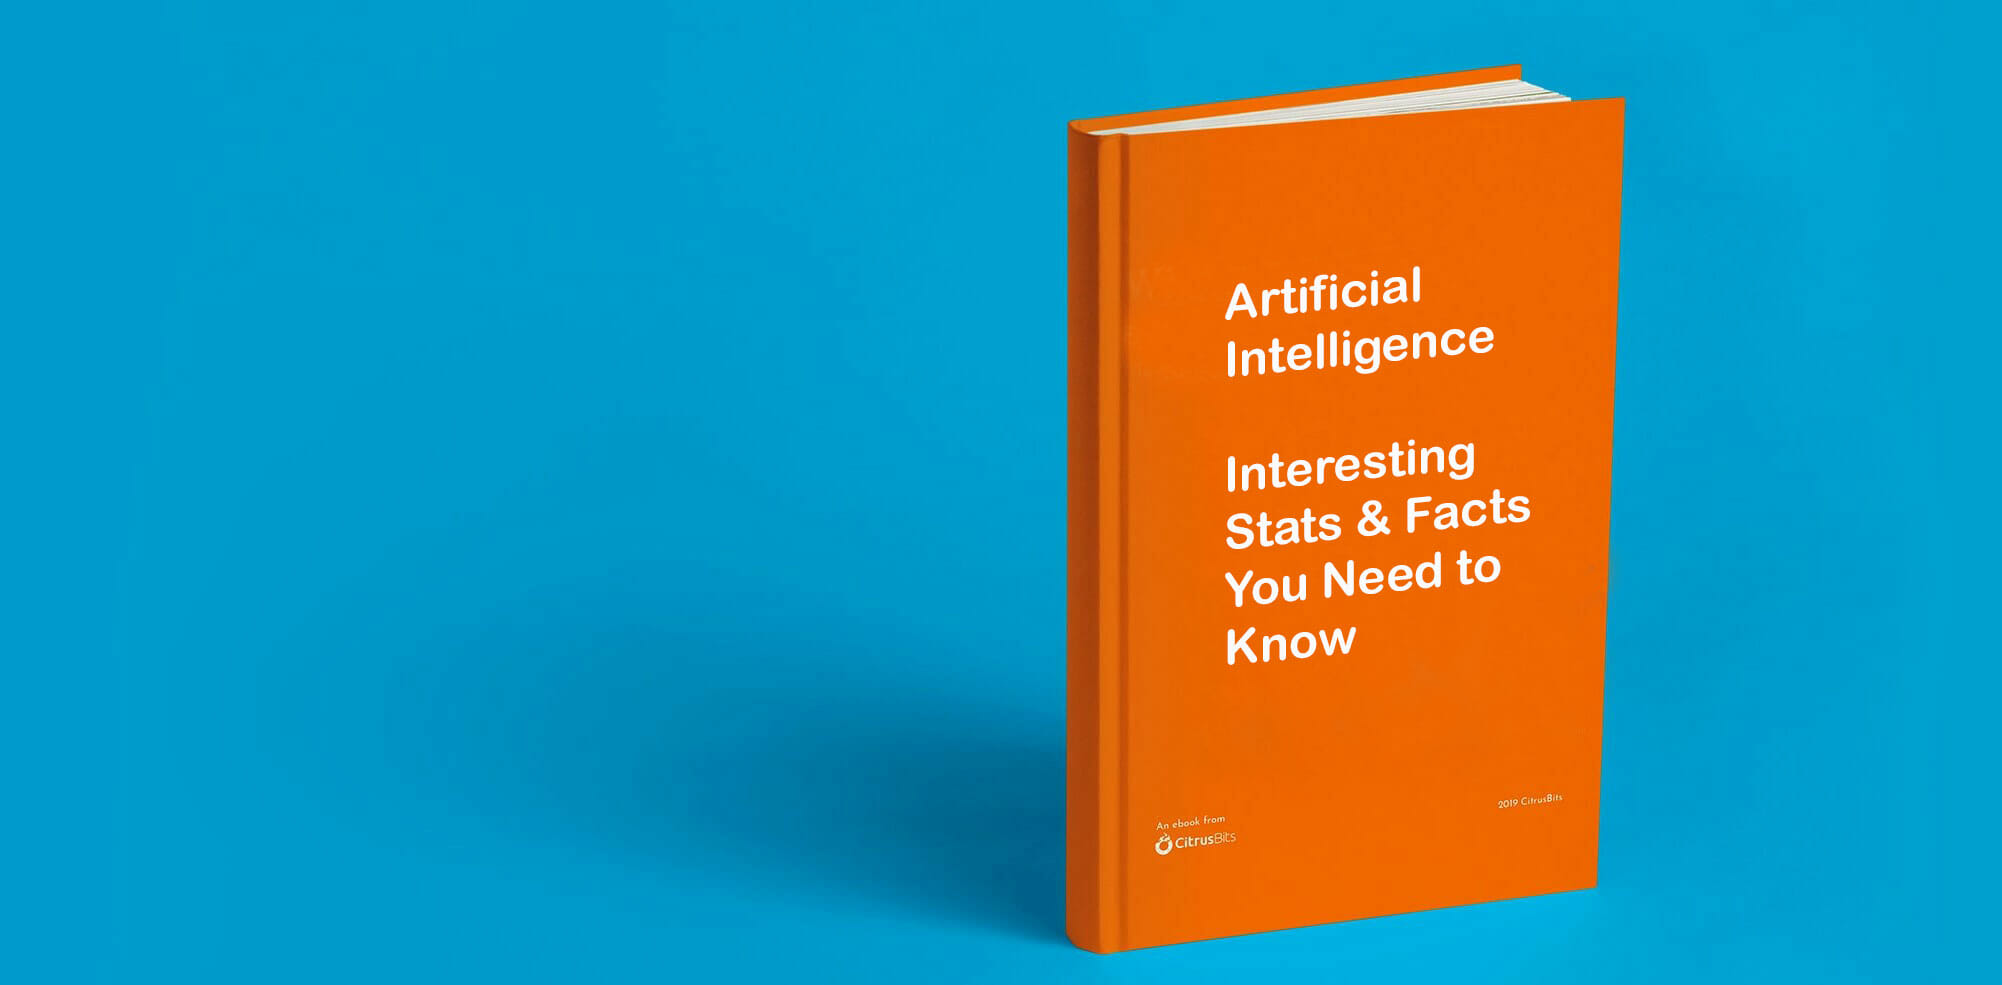 stats-and-facts-artificial-intelligence-e-book-free-download